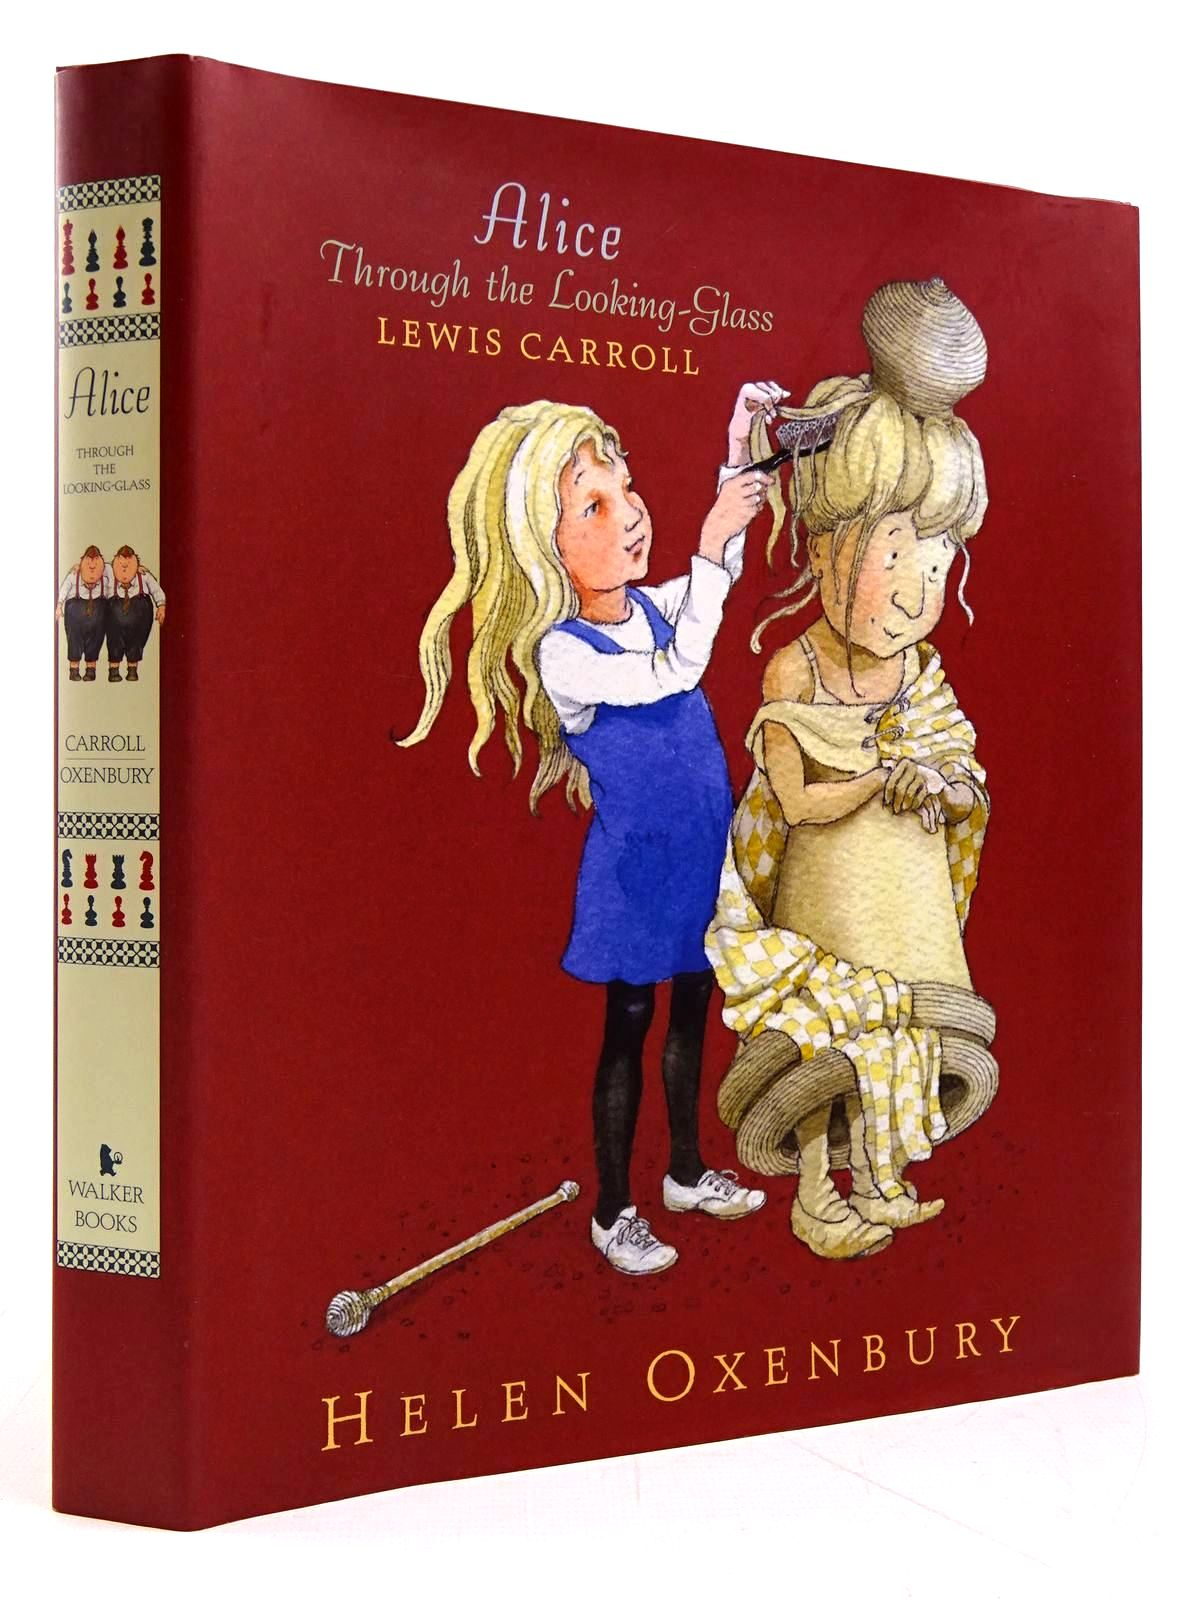 Photo of ALICE THROUGH THE LOOKING-GLASS written by Carroll, Lewis illustrated by Oxenbury, Helen published by Walker Books (STOCK CODE: 2131131)  for sale by Stella & Rose's Books